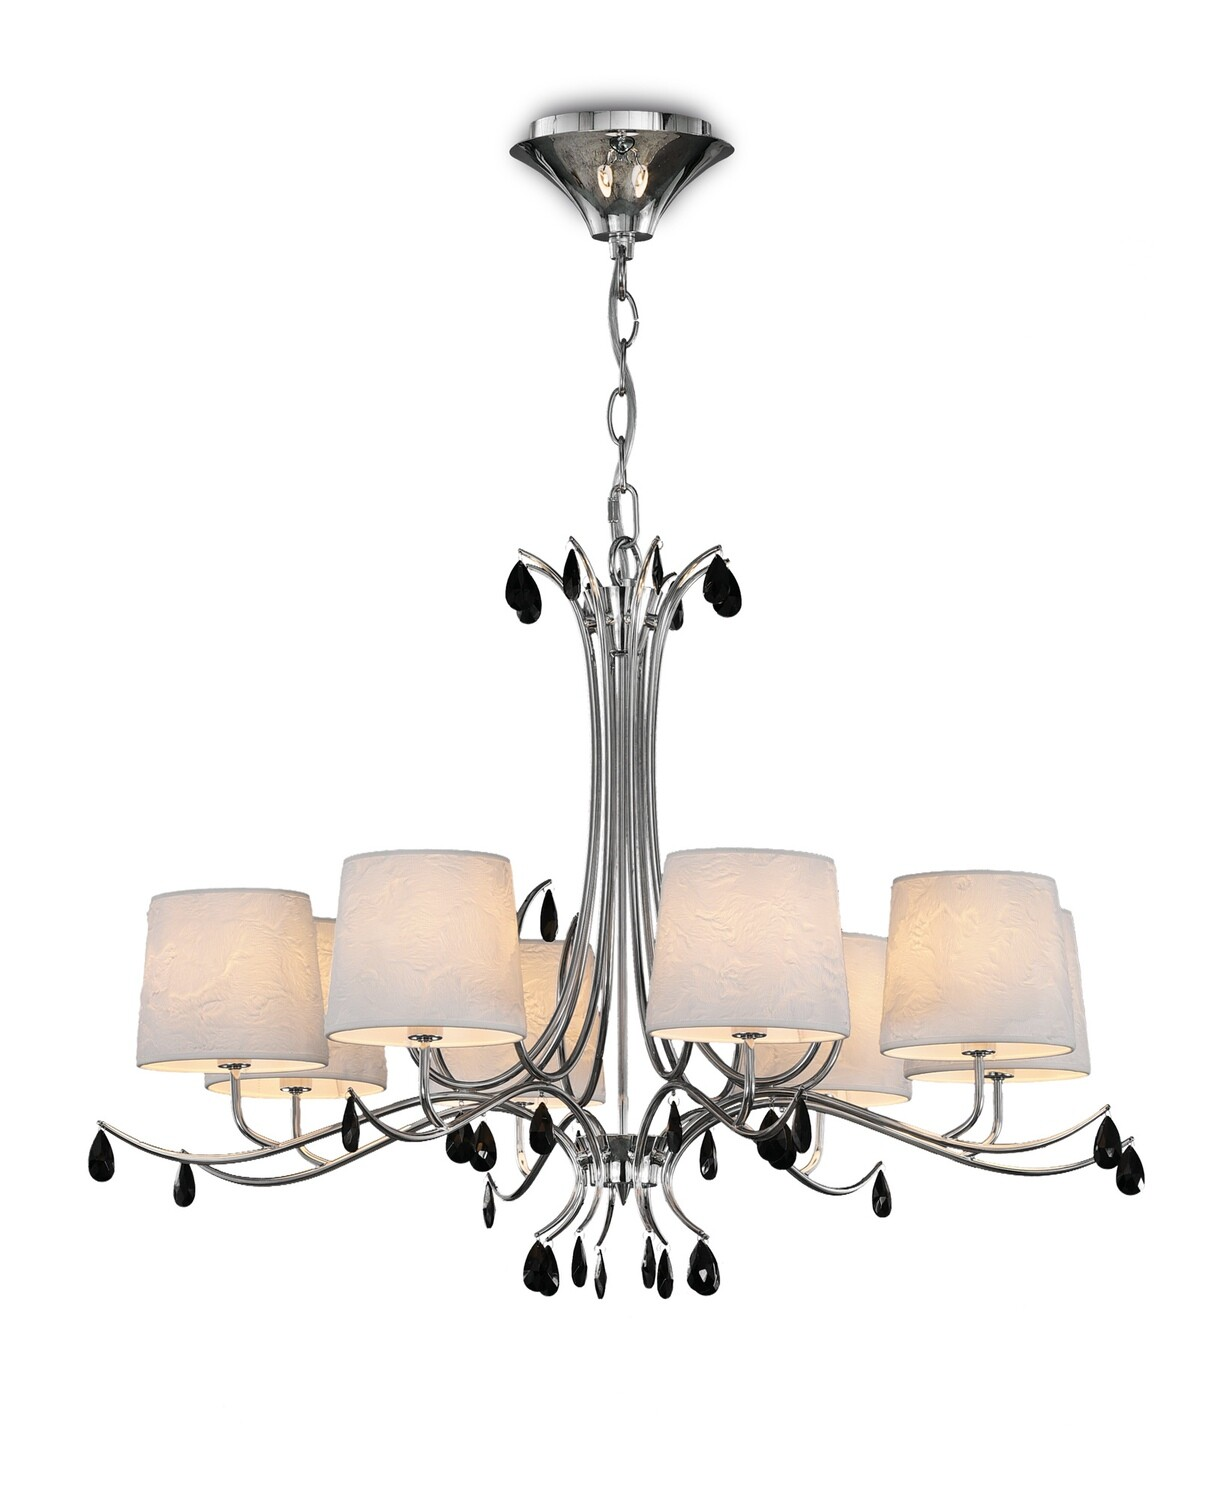 Andrea Pendant 100cm Round, 8 x E14 Polished Chrome, White Shades, Black Crystal Droplets